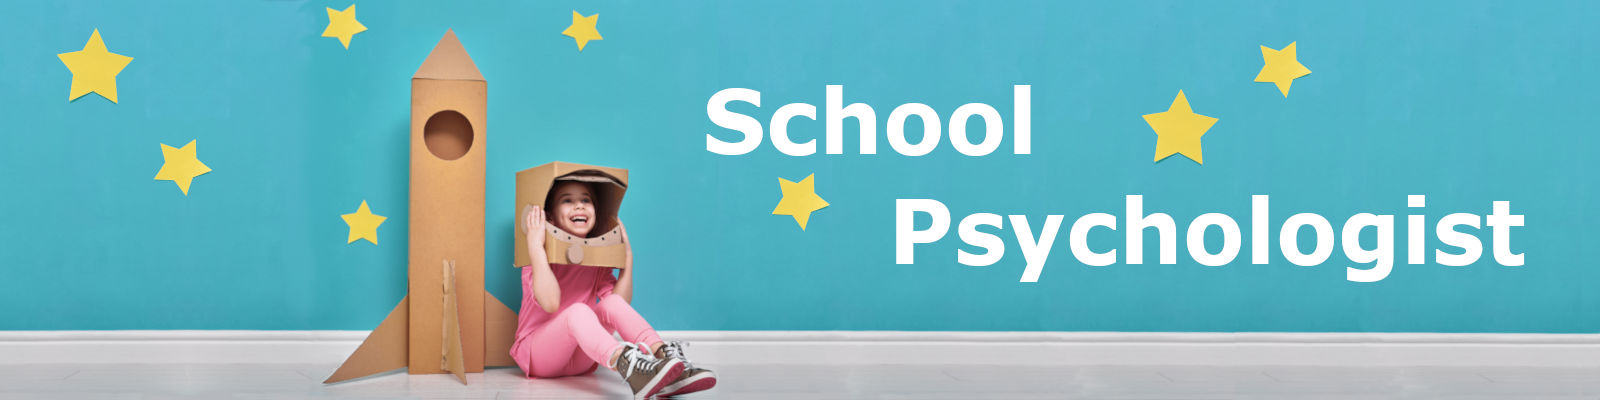 School Psychology Jobs in school districts near you, call us 800-555-ACTG